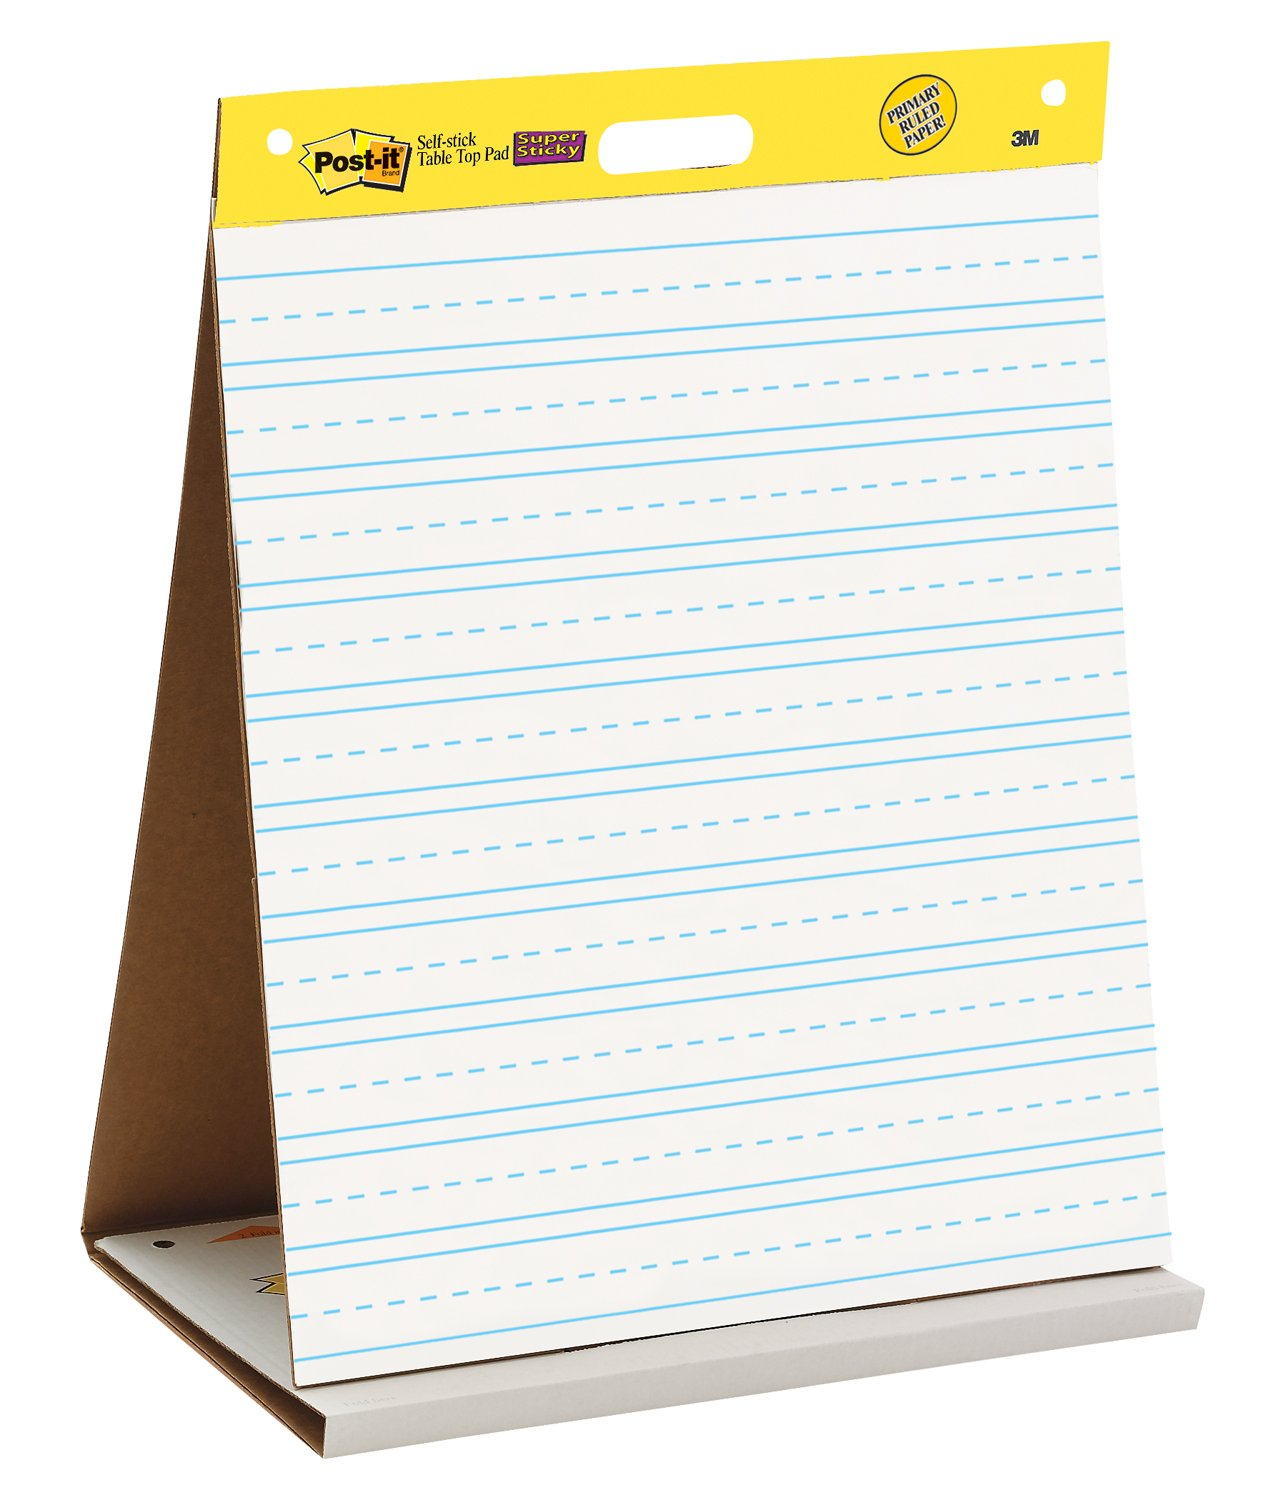 Amazon Com Post It Tabletop Easel Pad 20 X 23 Inches White  Lined Chart Paper